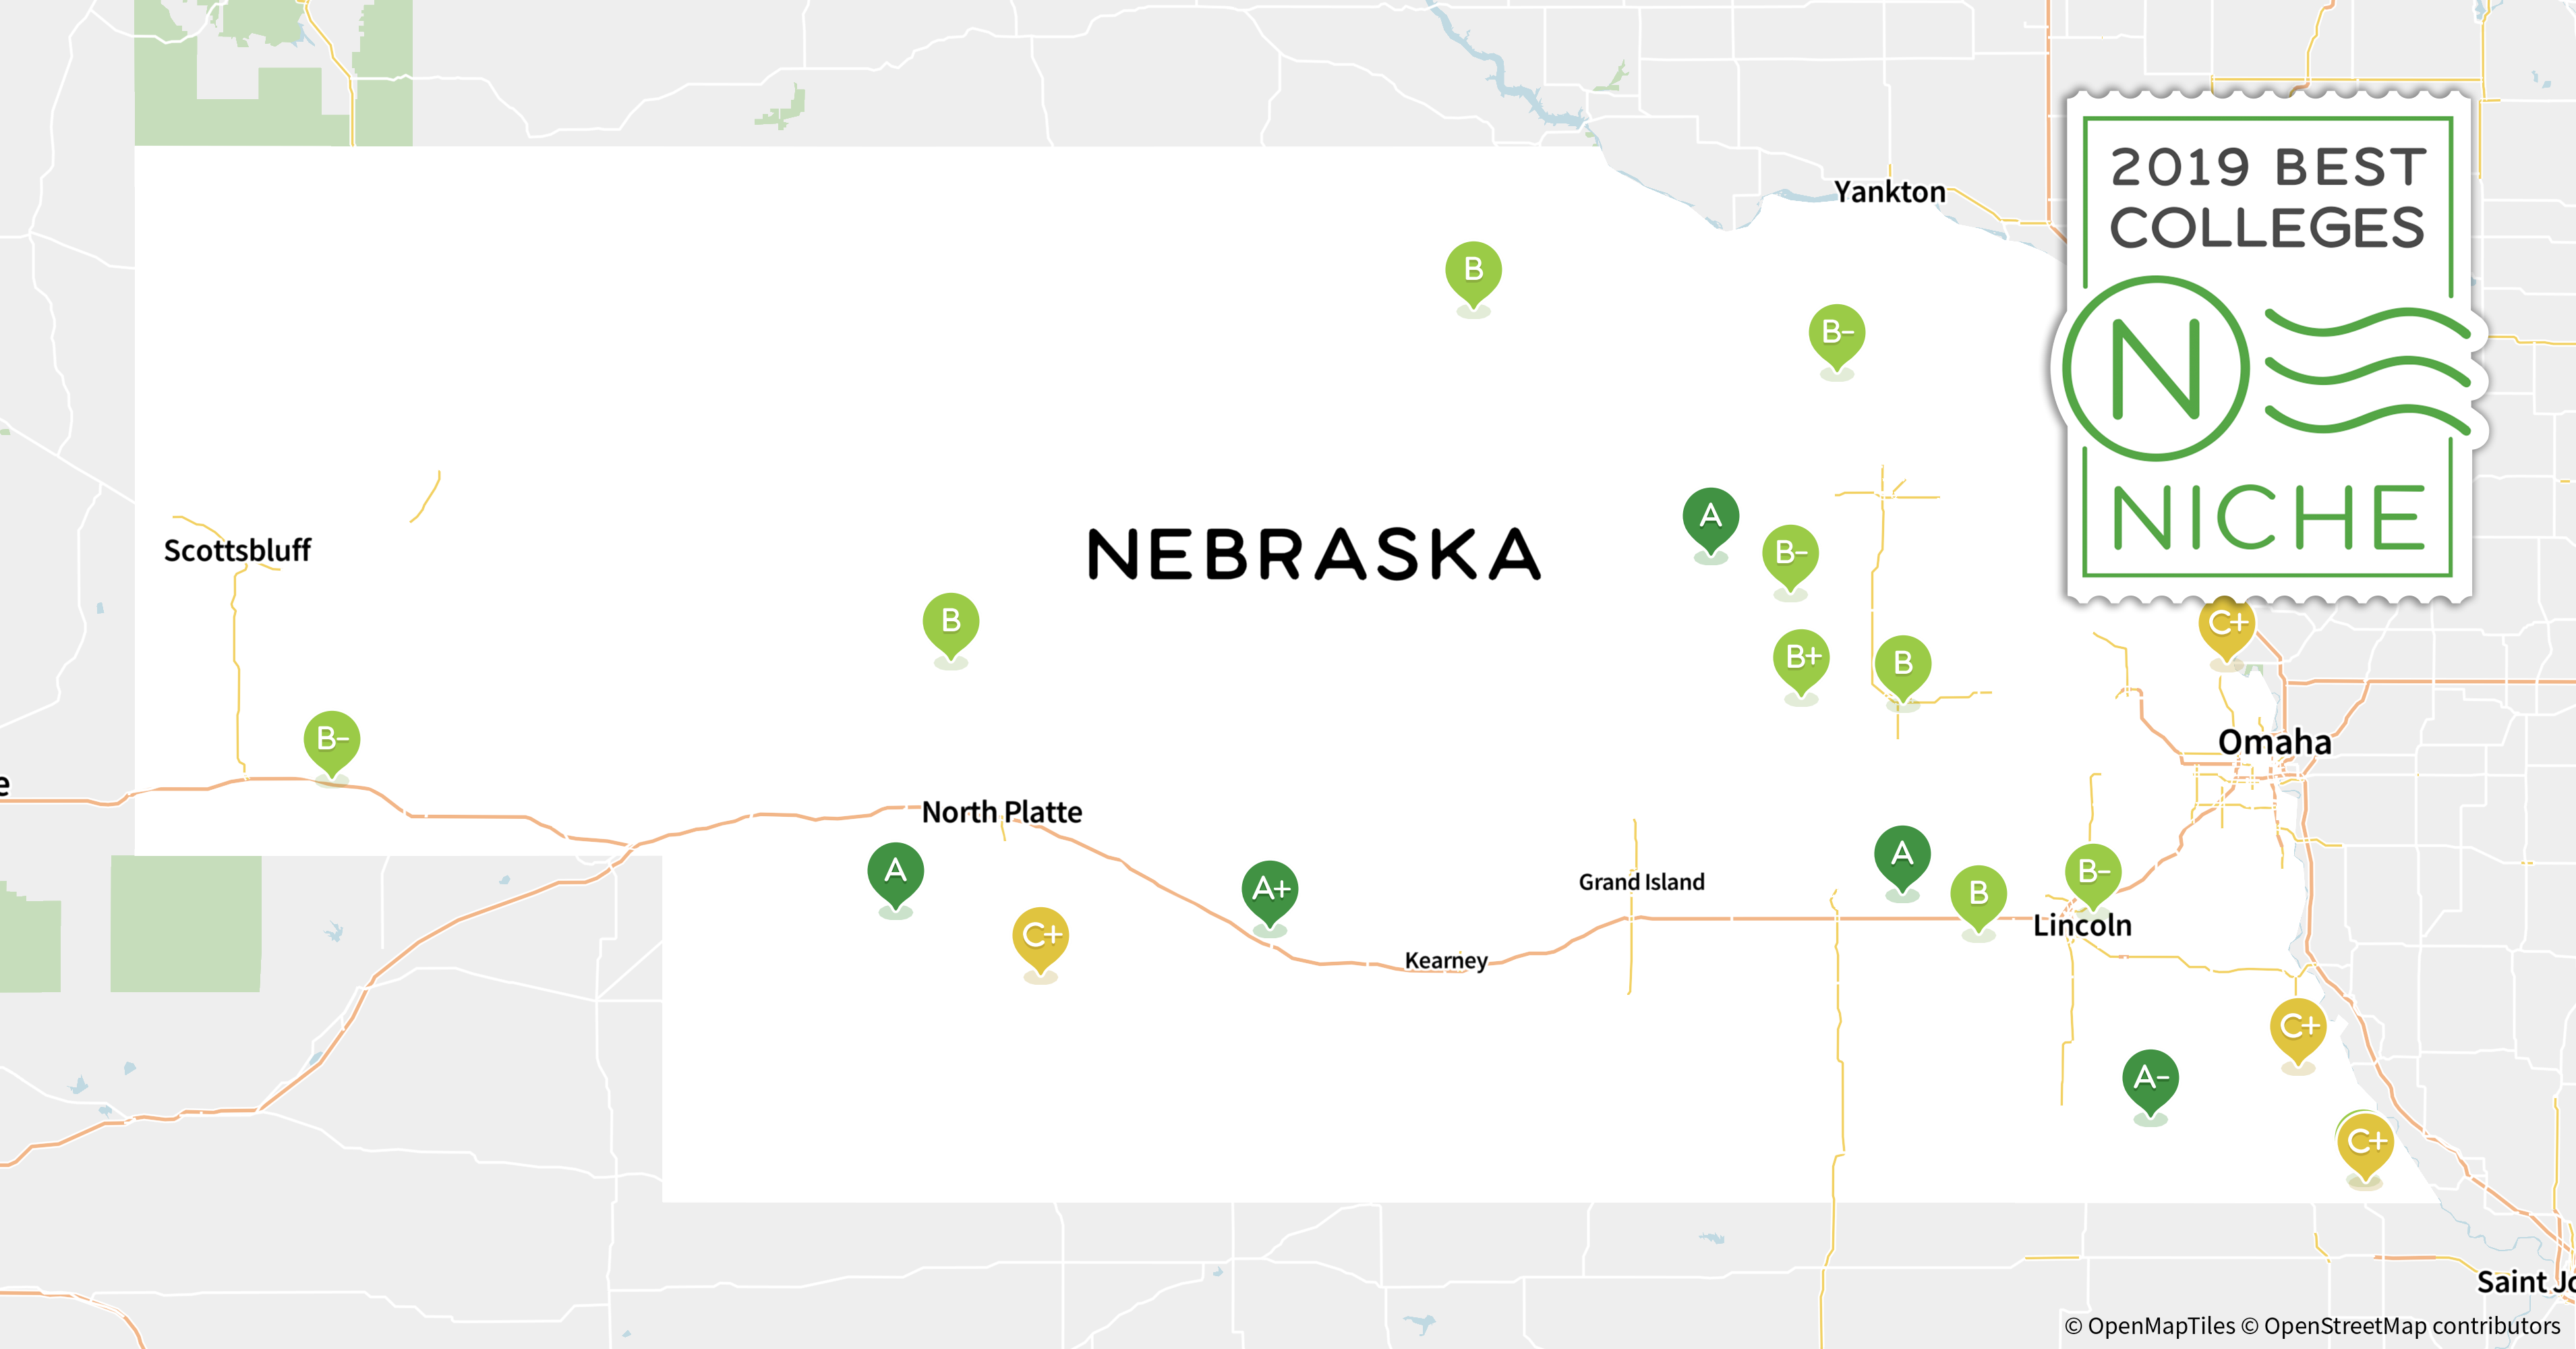 2019 Top Party Schools In Nebraska Niche